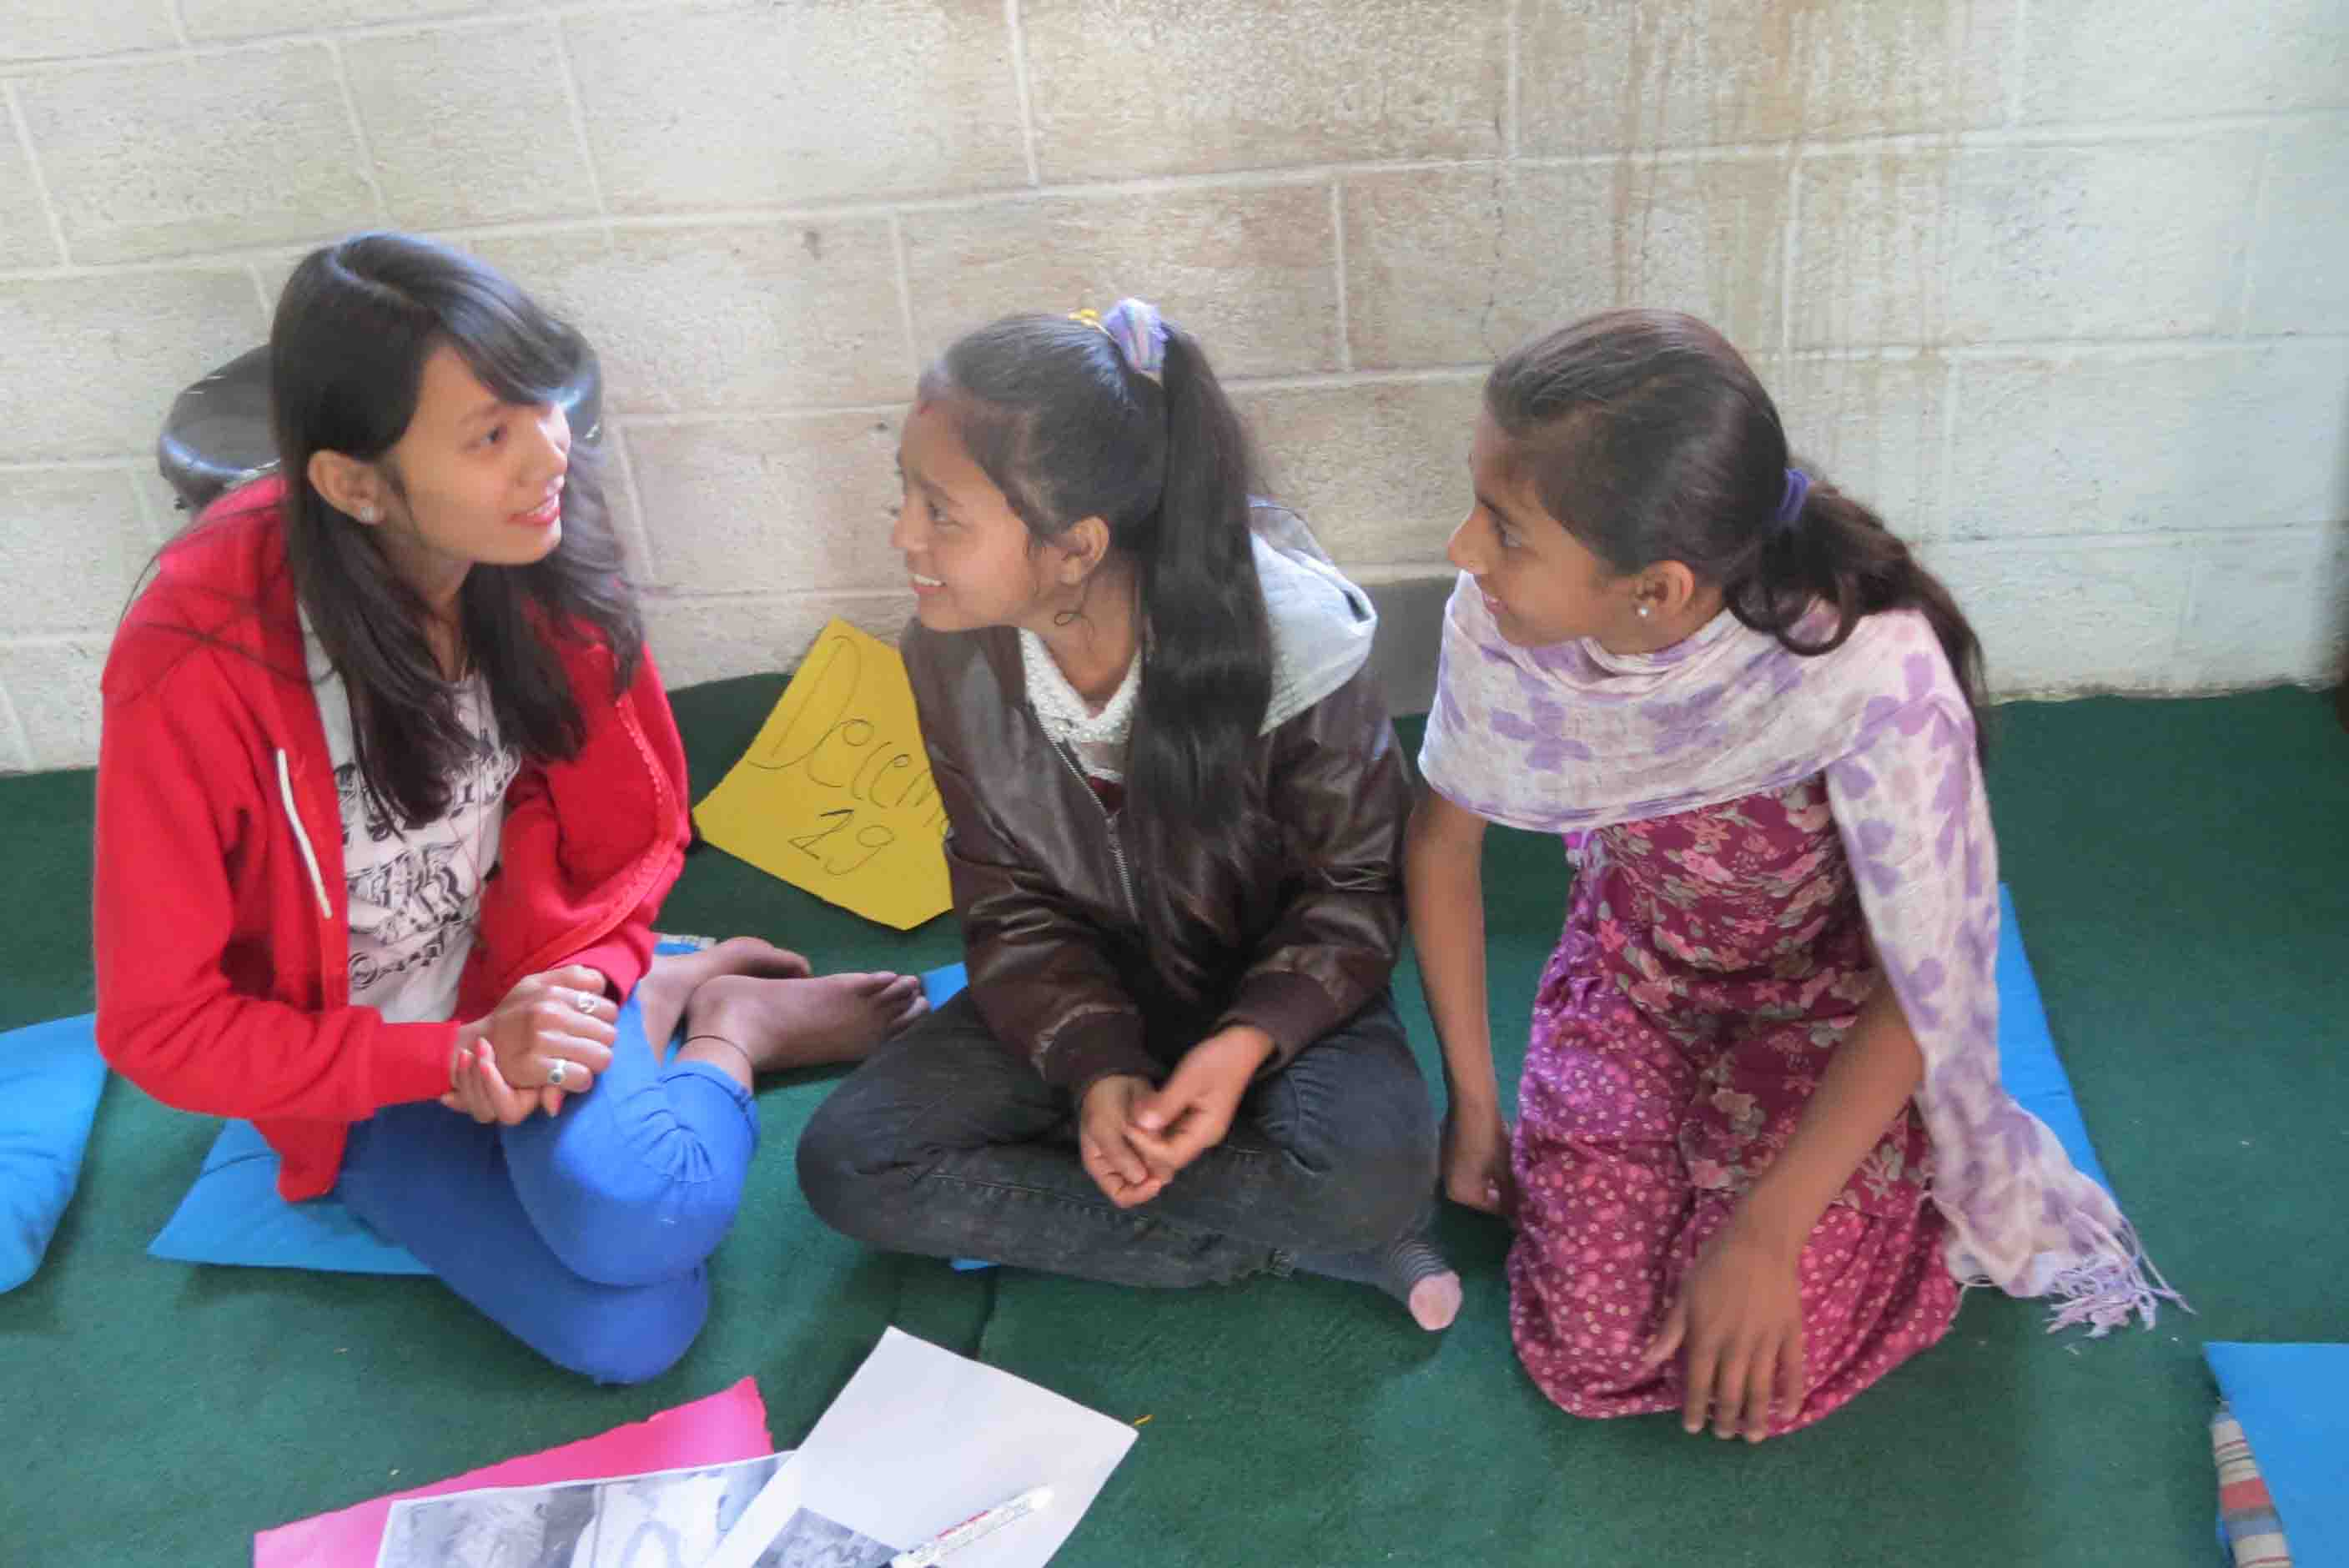 The girls were very thoughtful about the subjects and were very interested in learning about these serious issues